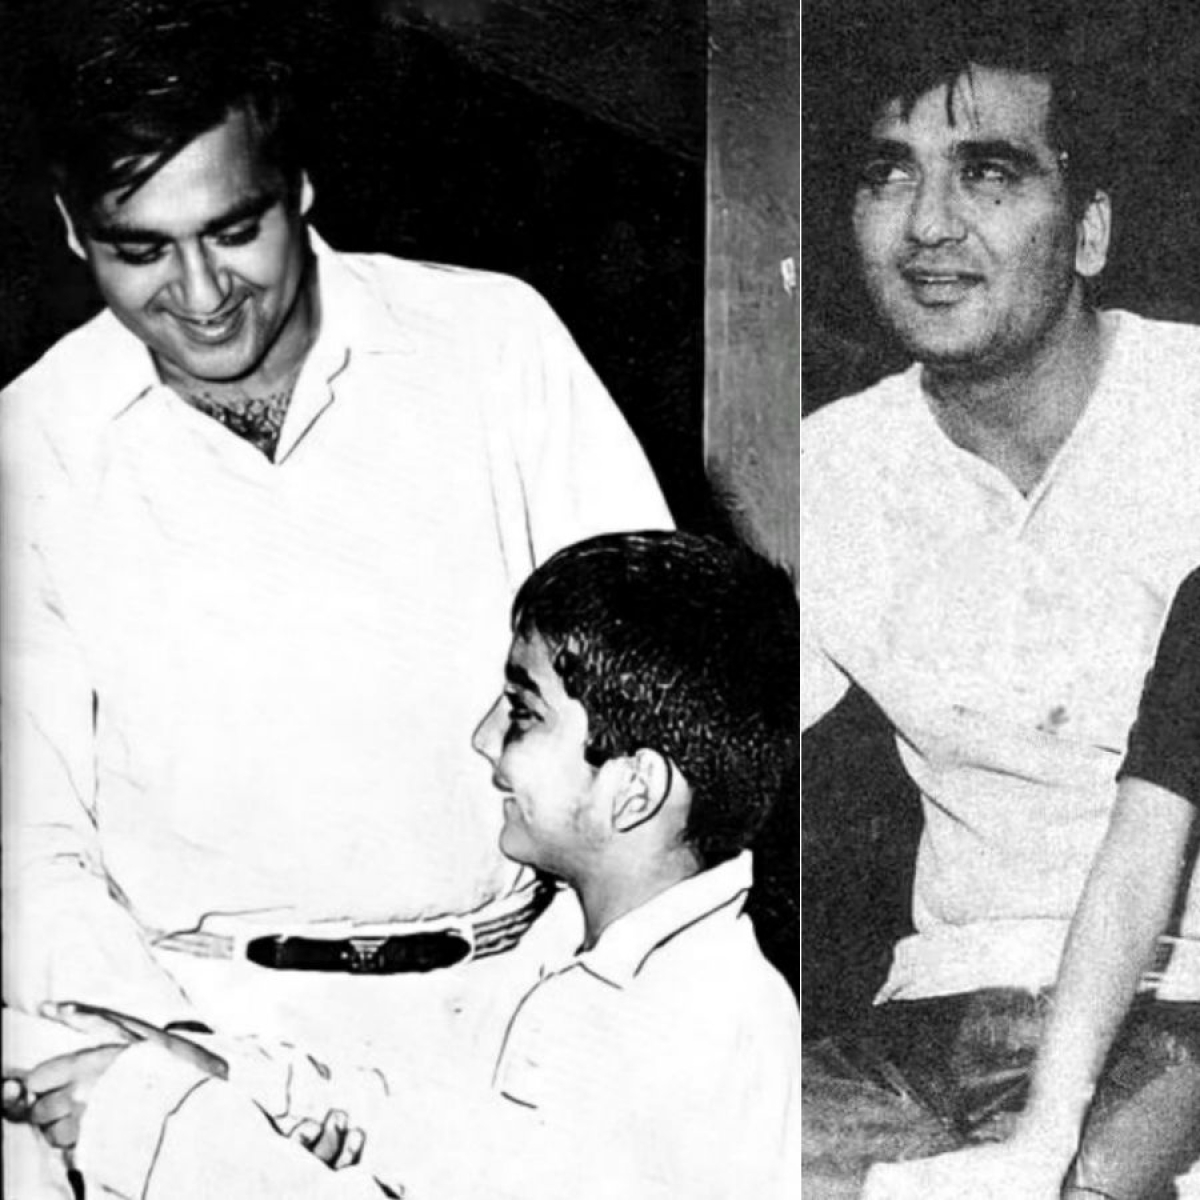 'Always holding my hand through thick and thin': Sanjay Dutt remembers dad Sunil Dutt on his birth anniversary